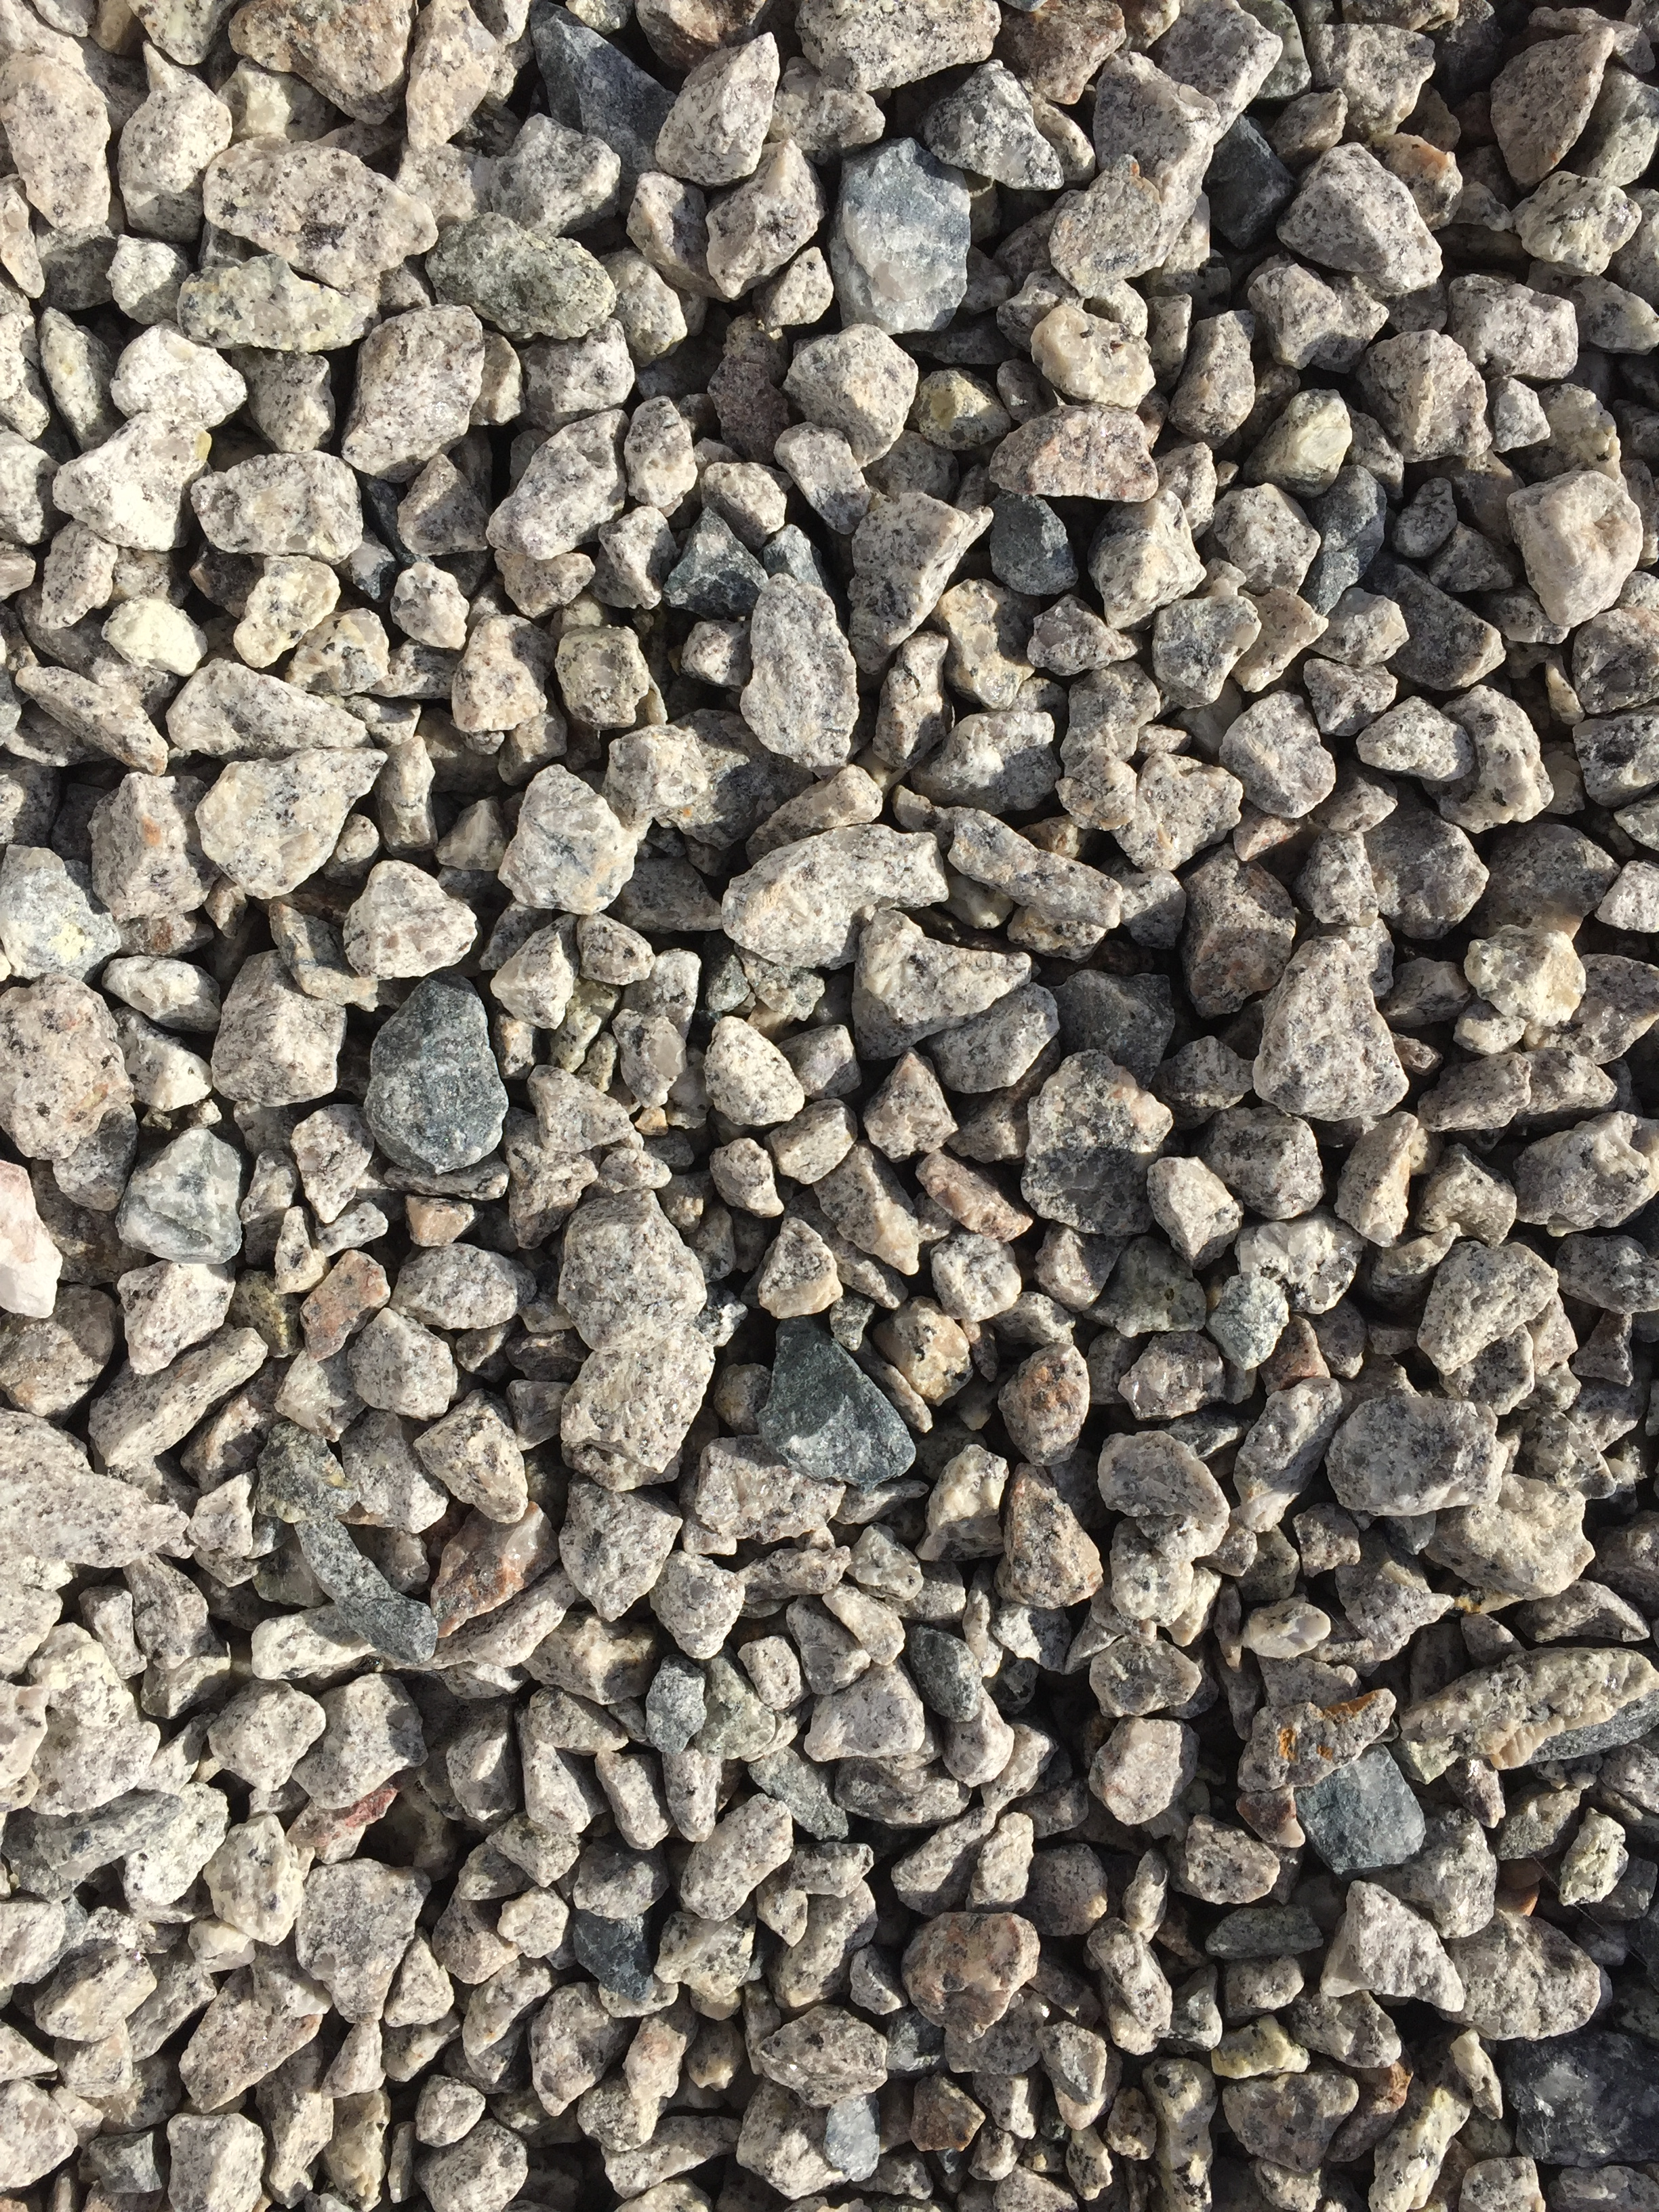 Granite Chippings